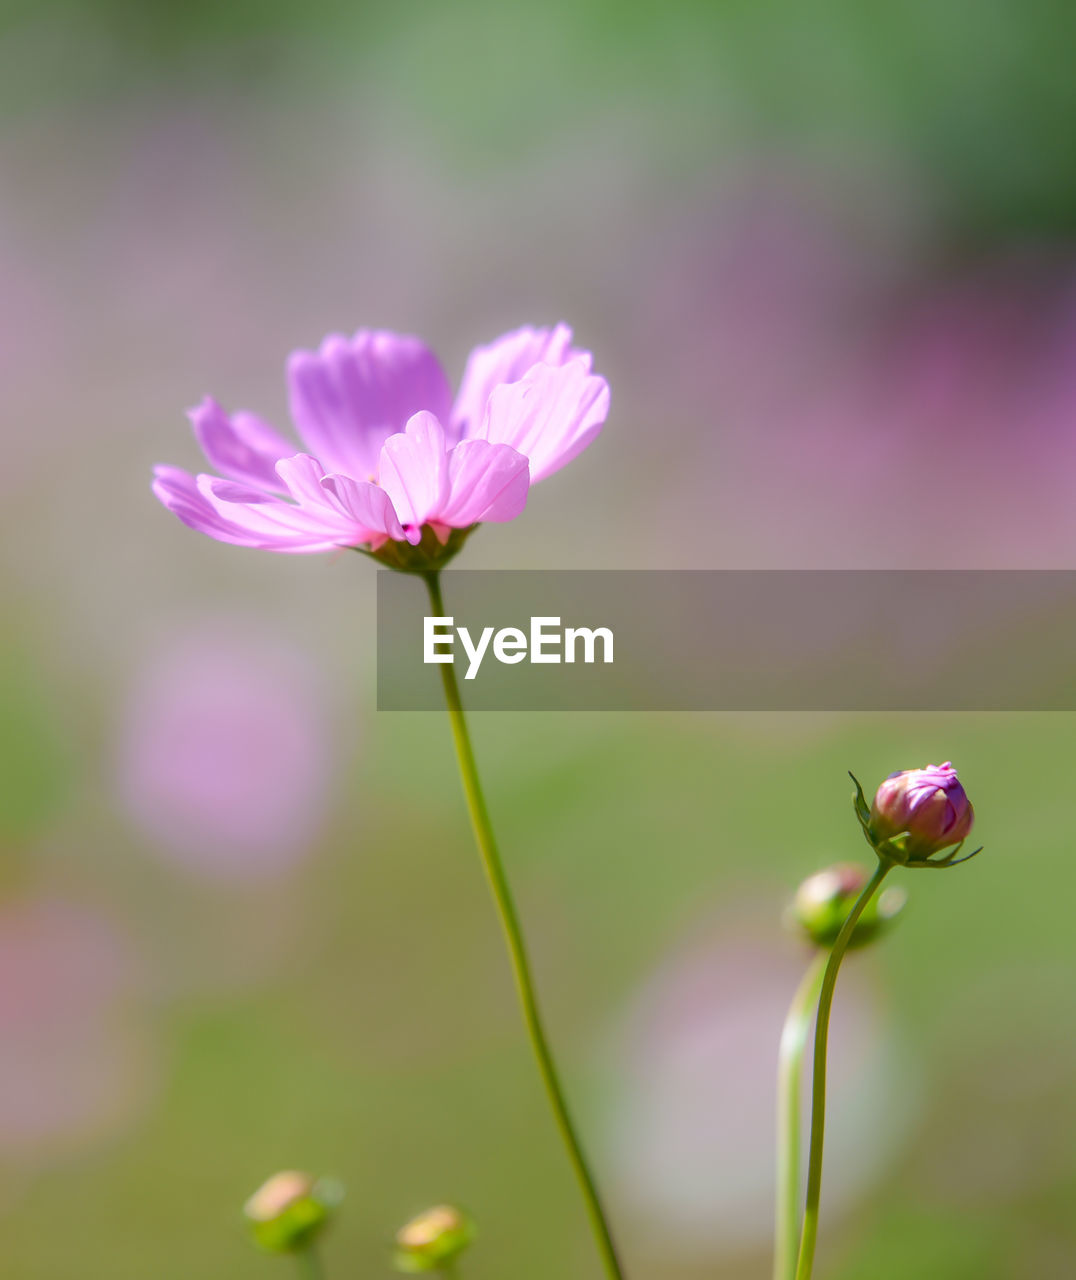 flowering plant, flower, fragility, vulnerability, beauty in nature, freshness, plant, pink color, close-up, petal, growth, inflorescence, flower head, focus on foreground, plant stem, nature, no people, day, selective focus, outdoors, purple, sepal